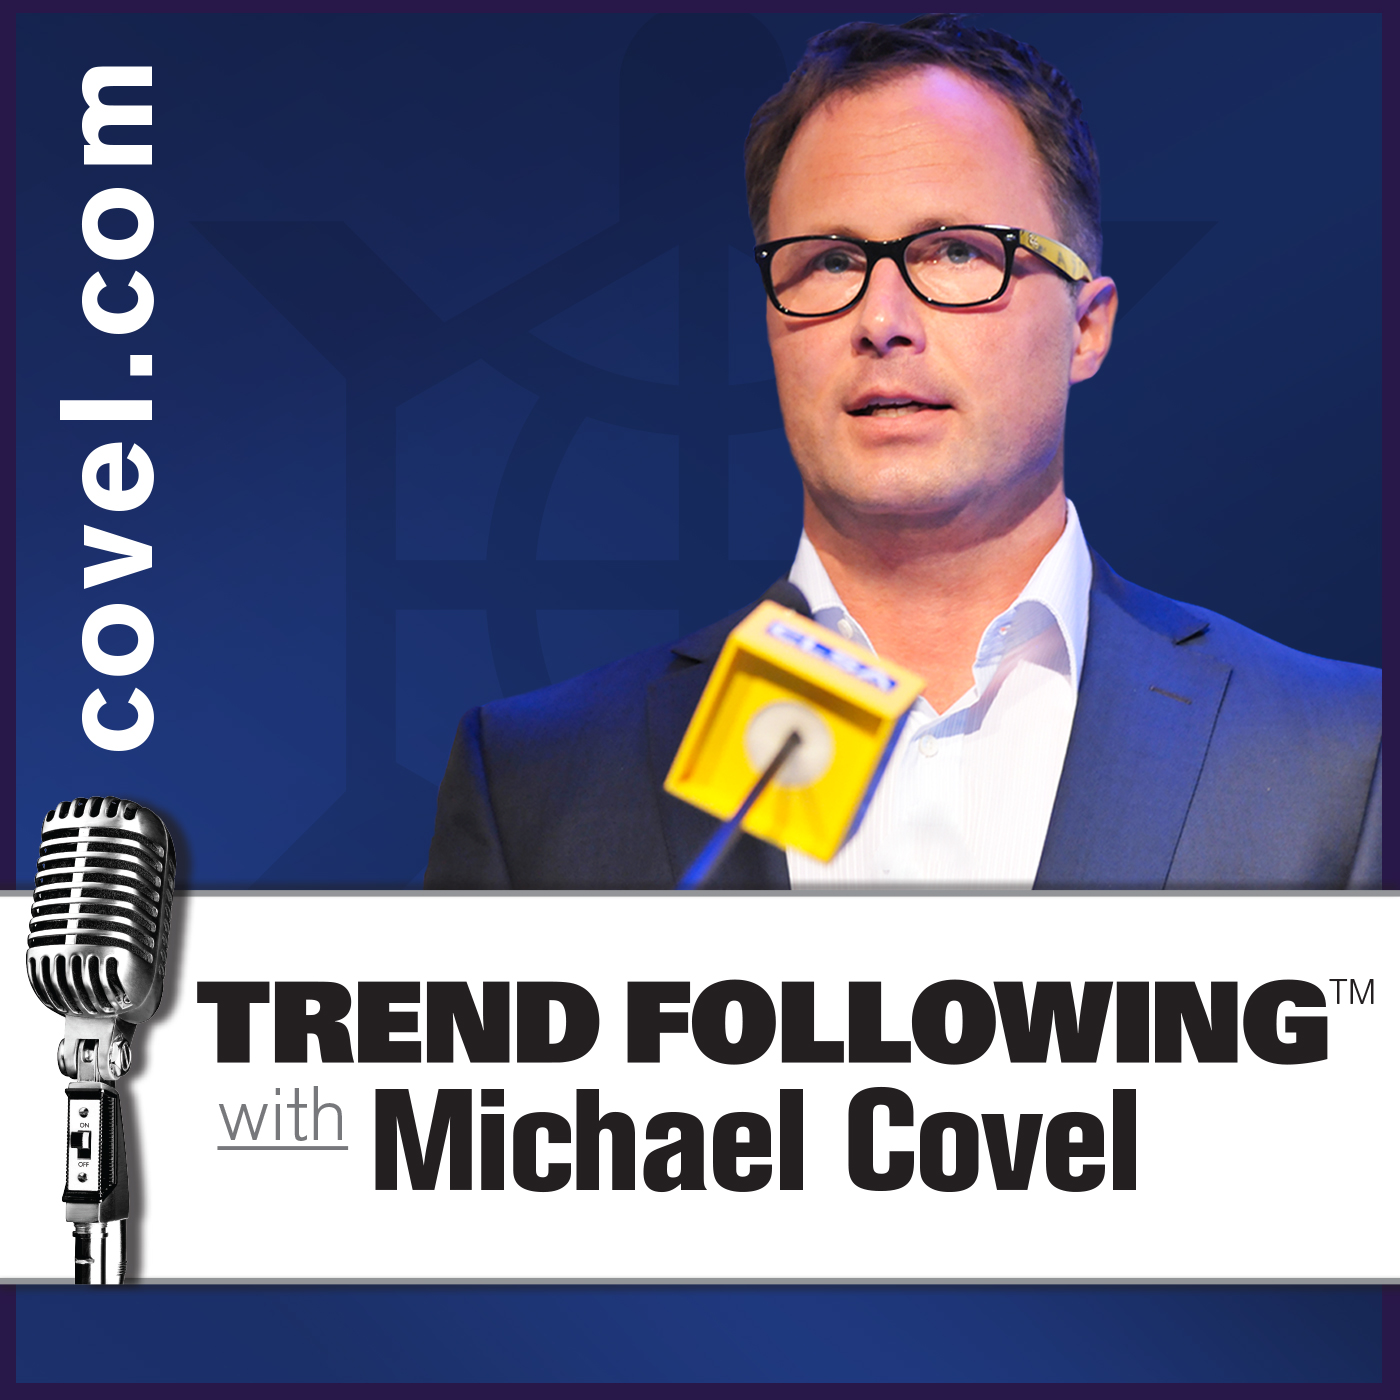 Ep. 512: Tim Price Interview #3 with Michael Covel on Trend Following Radio